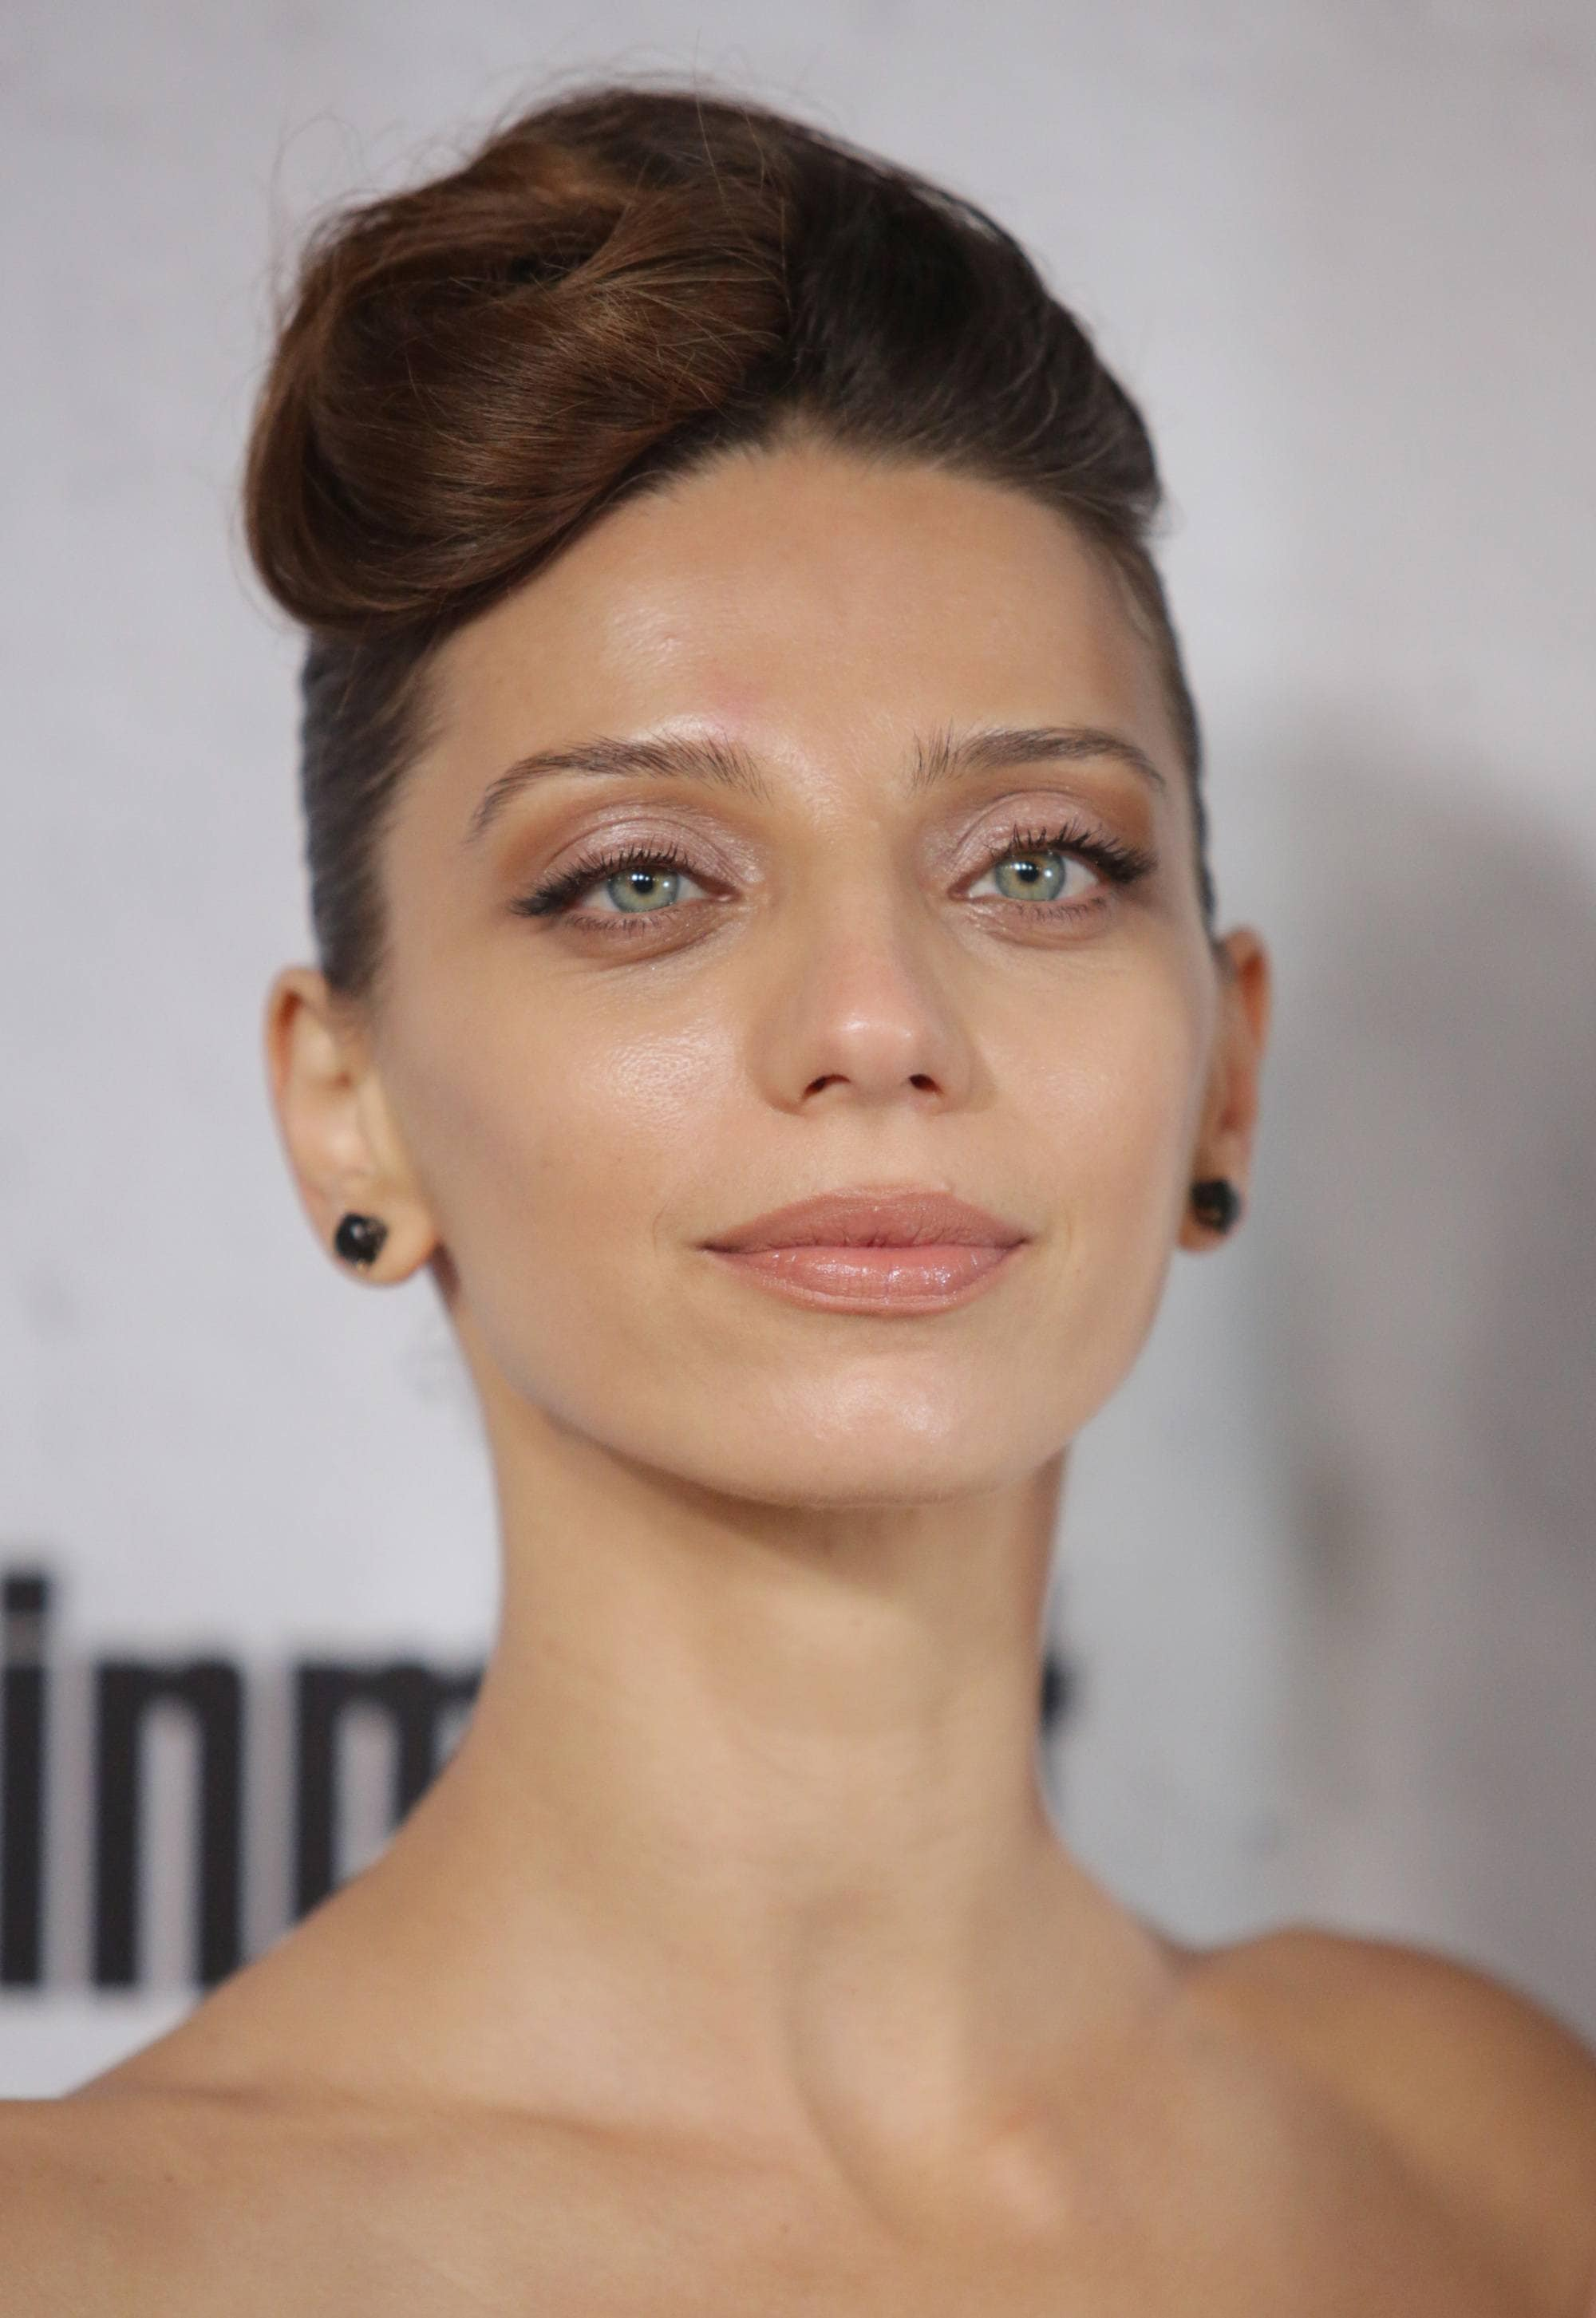 westworld actress angela sarafyan with her hair in a rockabilly inspired updo